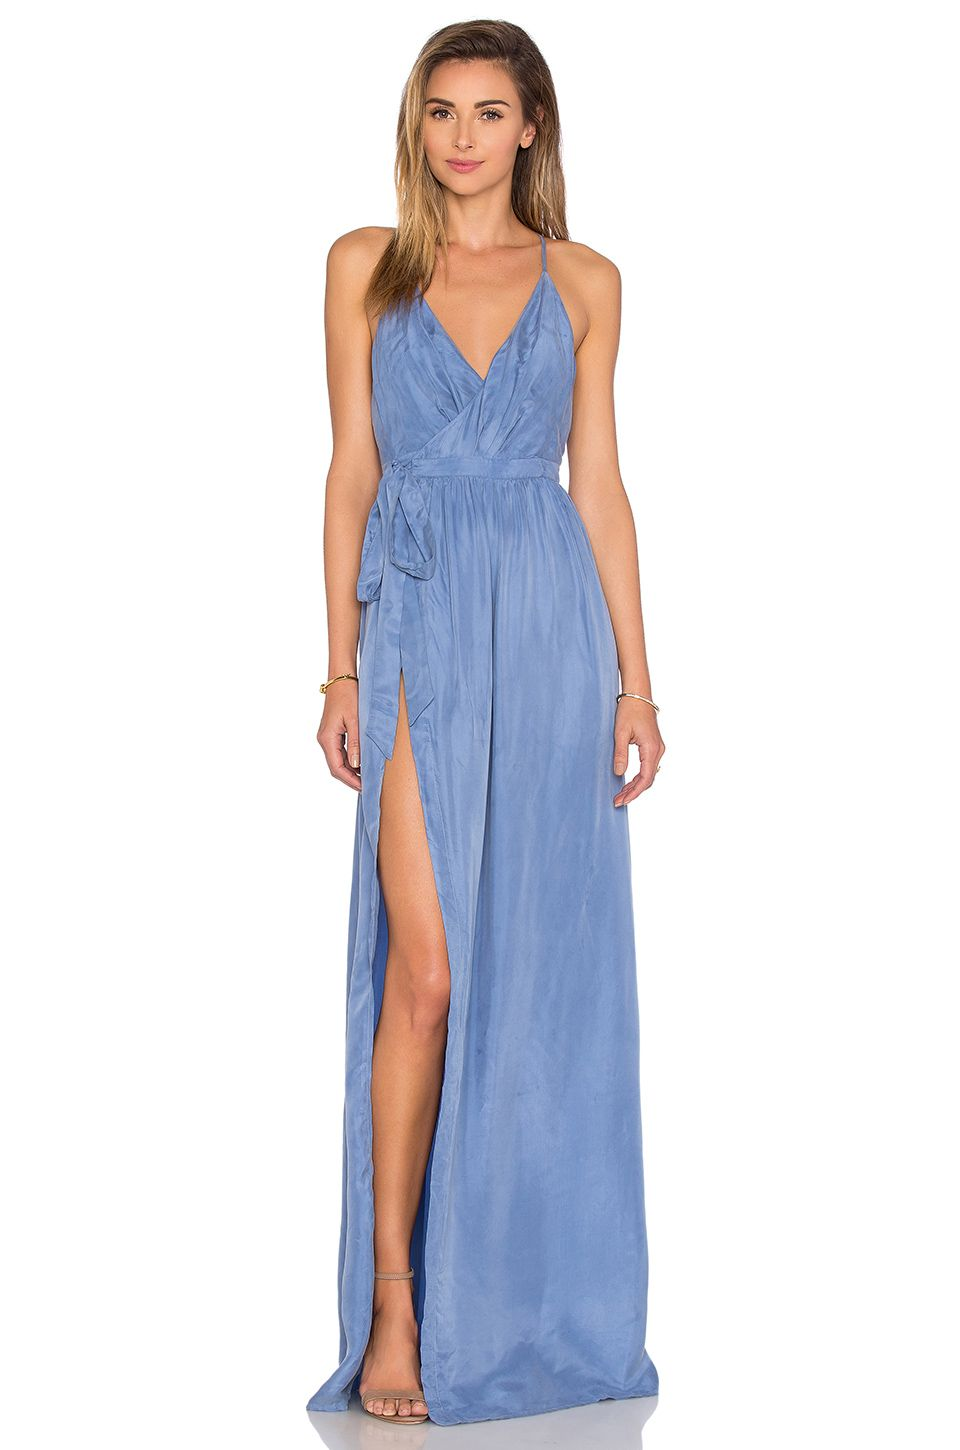 THE JETSET DIARIES Sunset Wrap Dress in Smokey Blue | Dresses ...